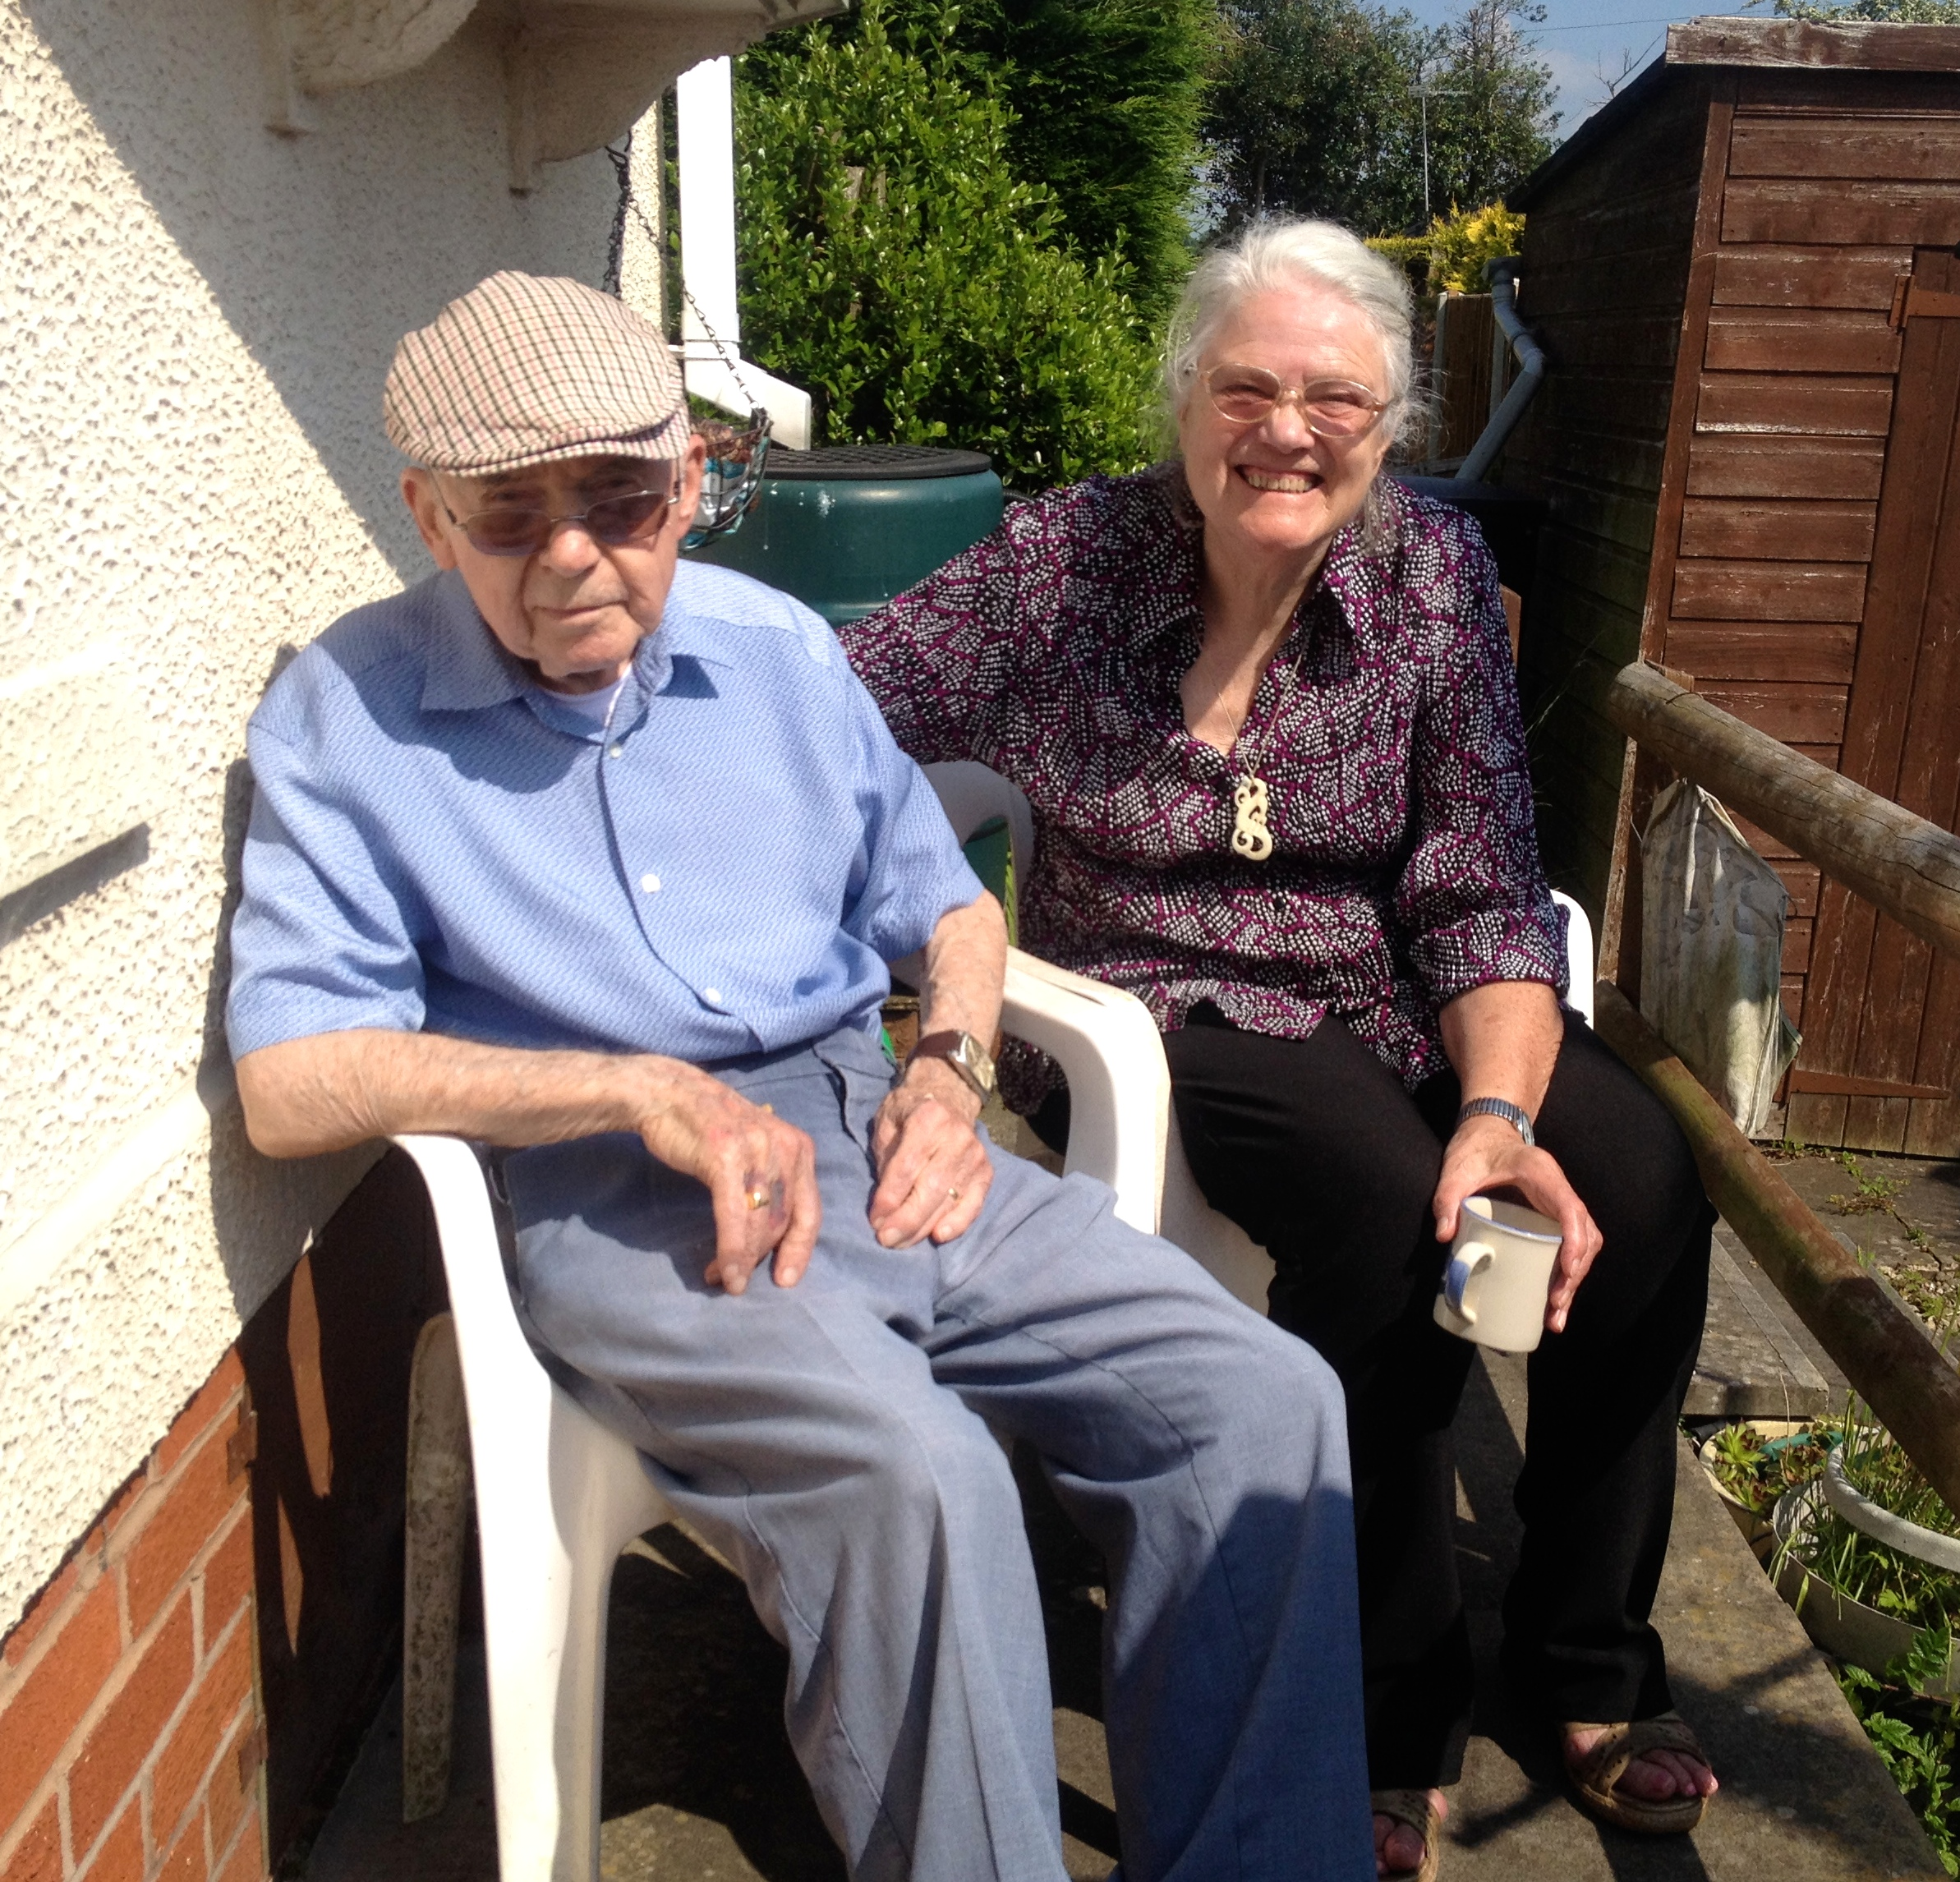 Dad and mum capture some glorious British sunshine